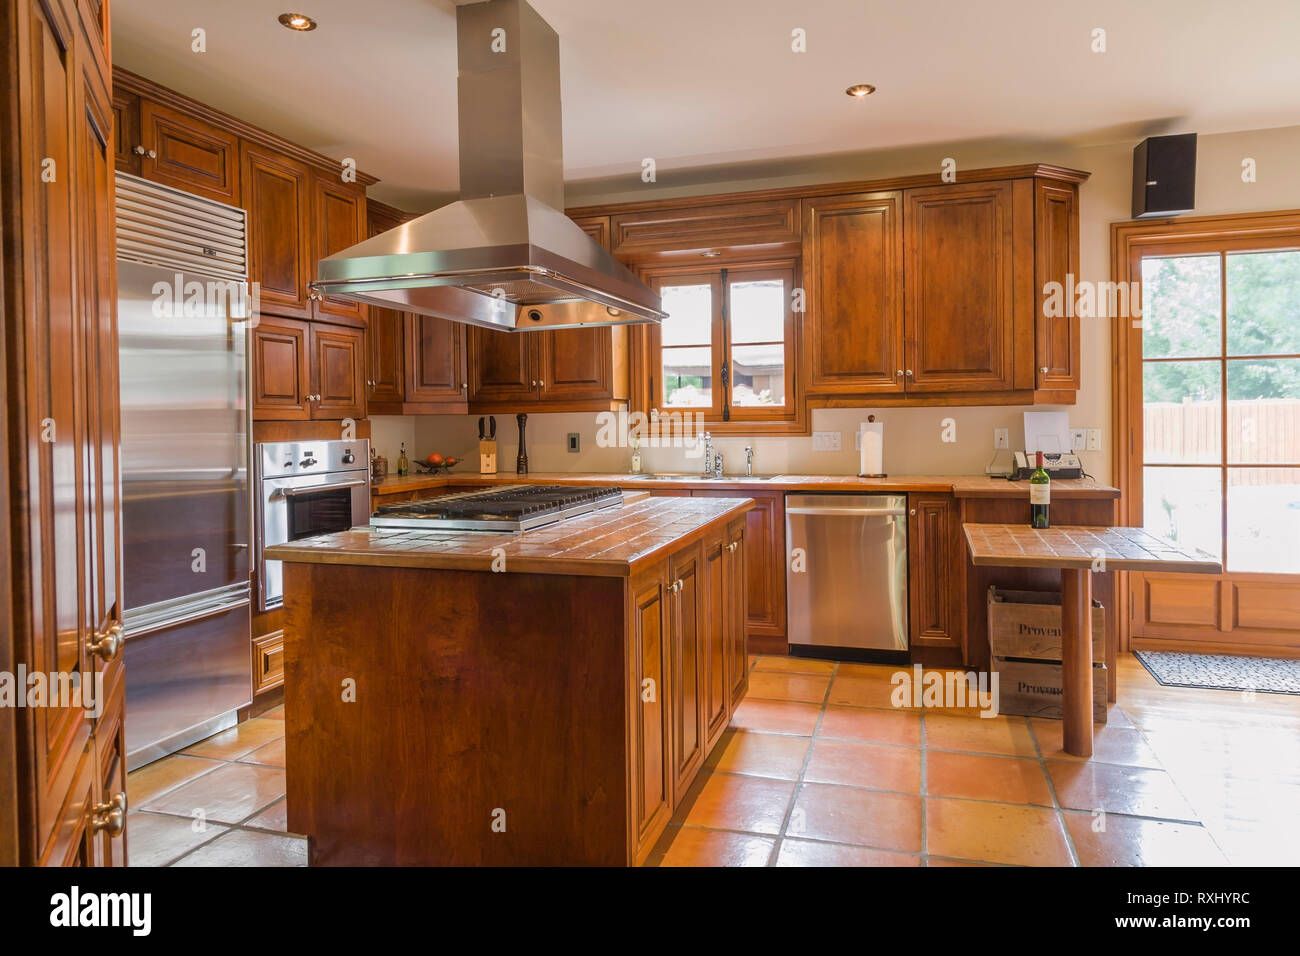 Maple Wood Cabinets And Island With Marble Tile Countertop In Kitchen With Terracotta Ceramic Tile Floor